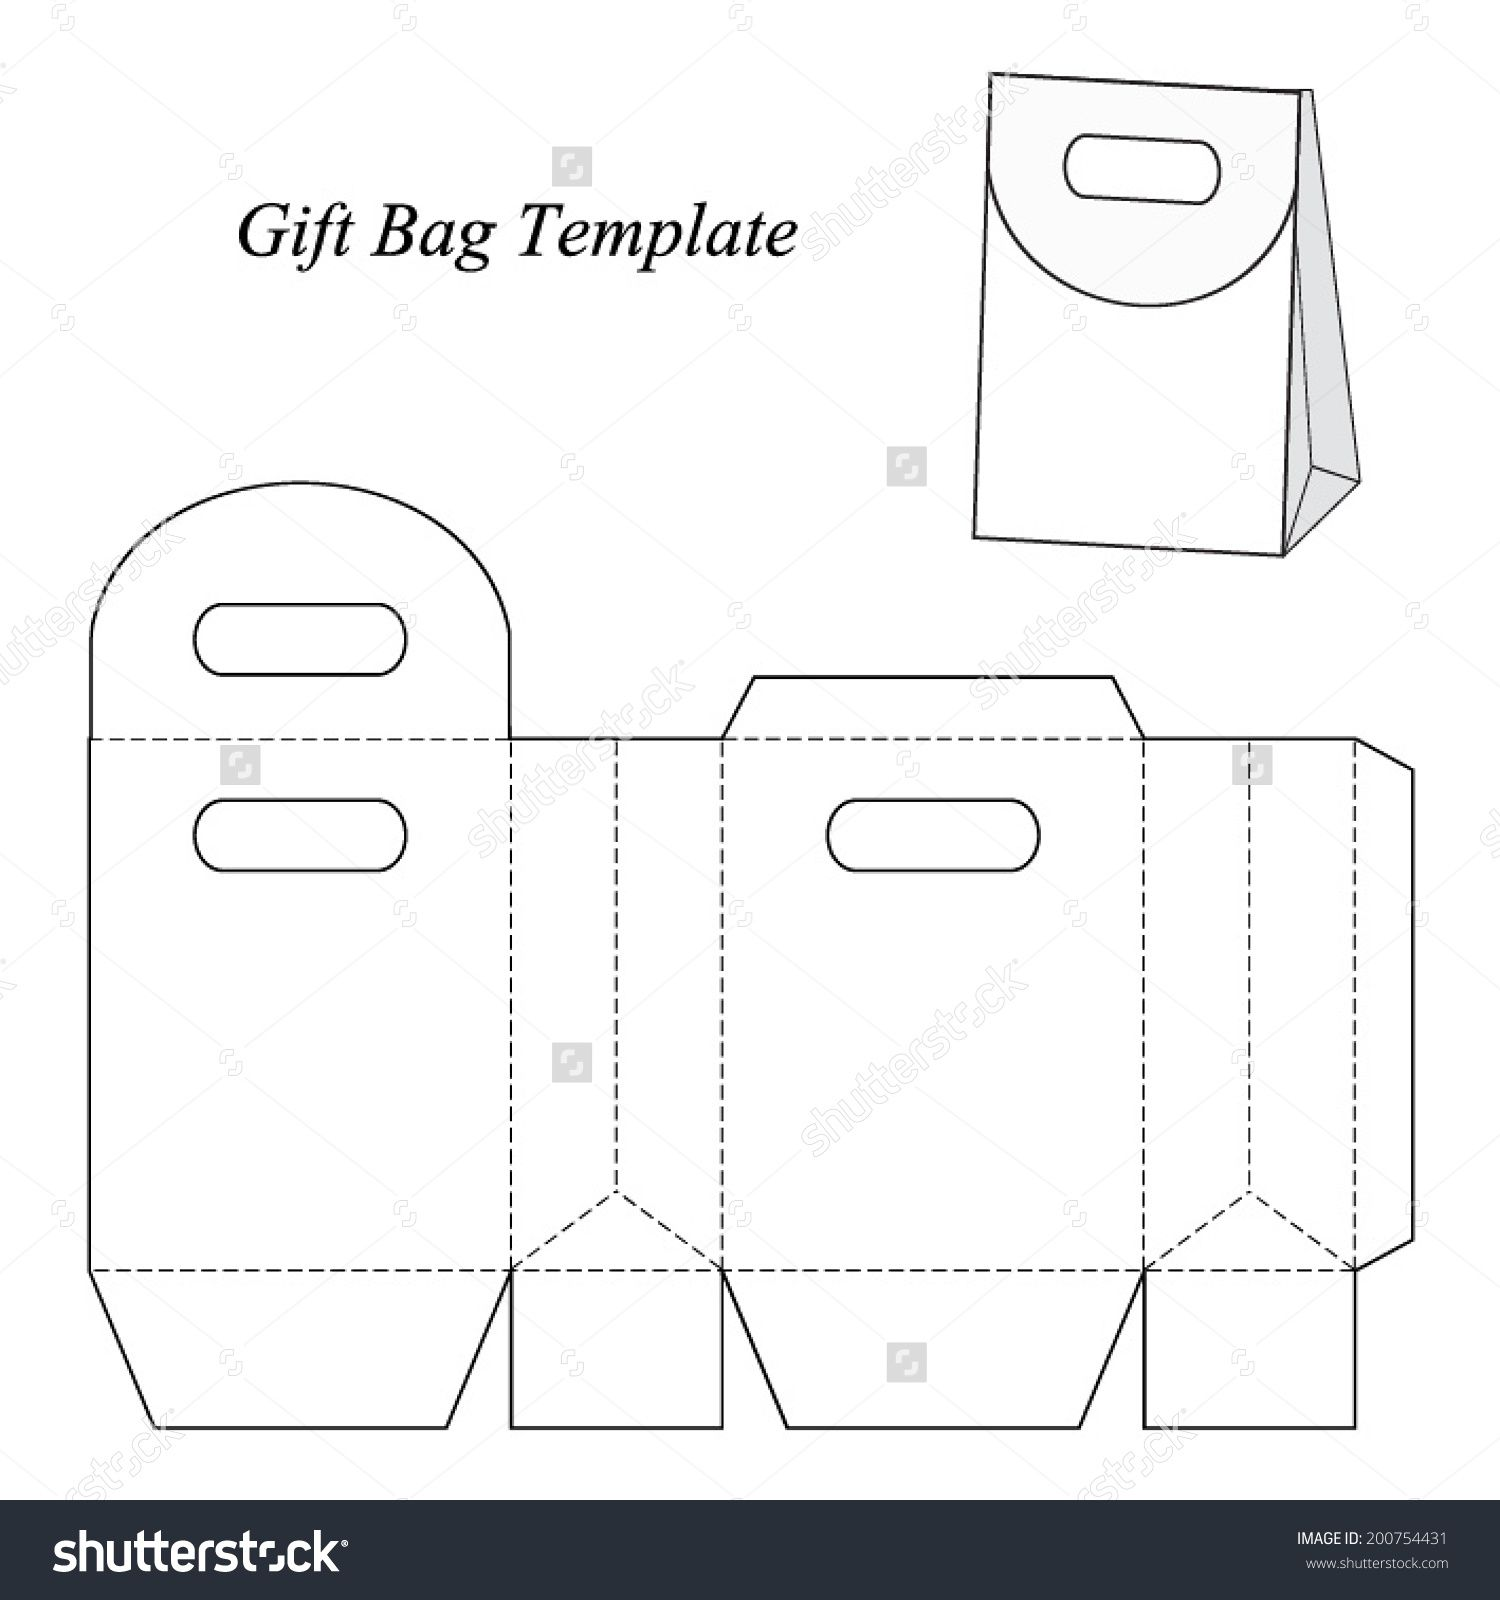 goodie bag template akba greenw co